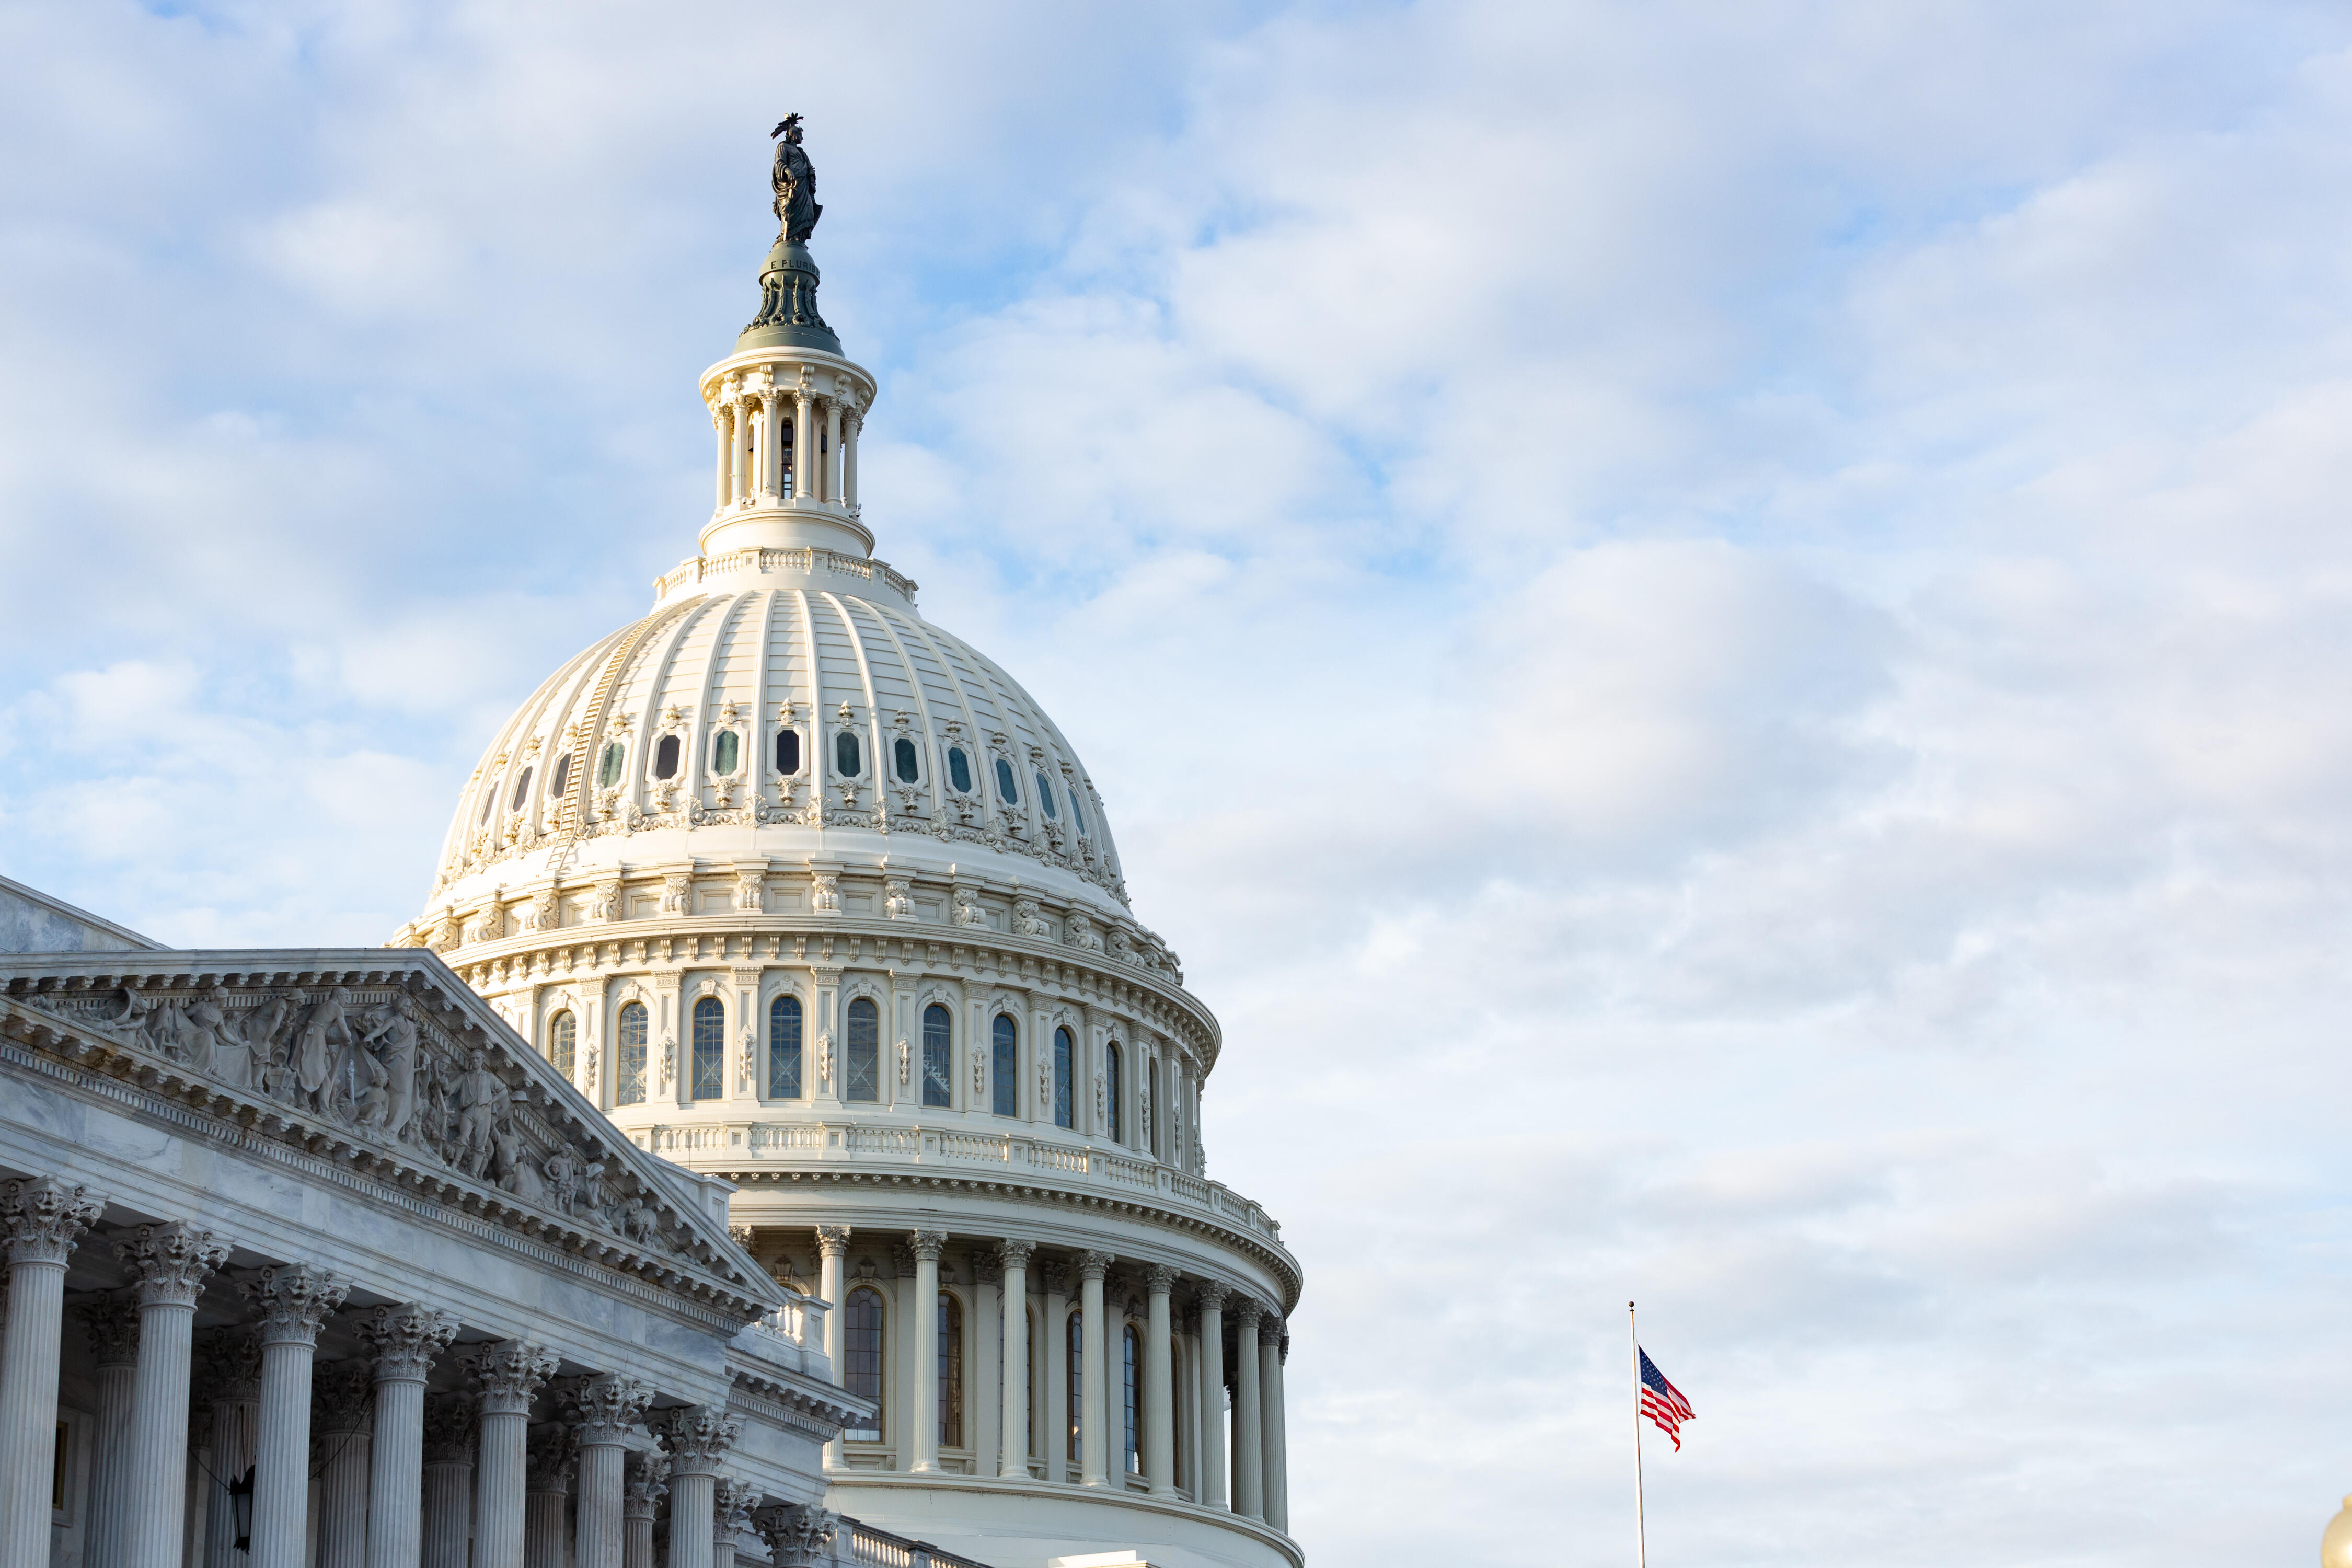 us-capitol-2-gettyimages-1230254204